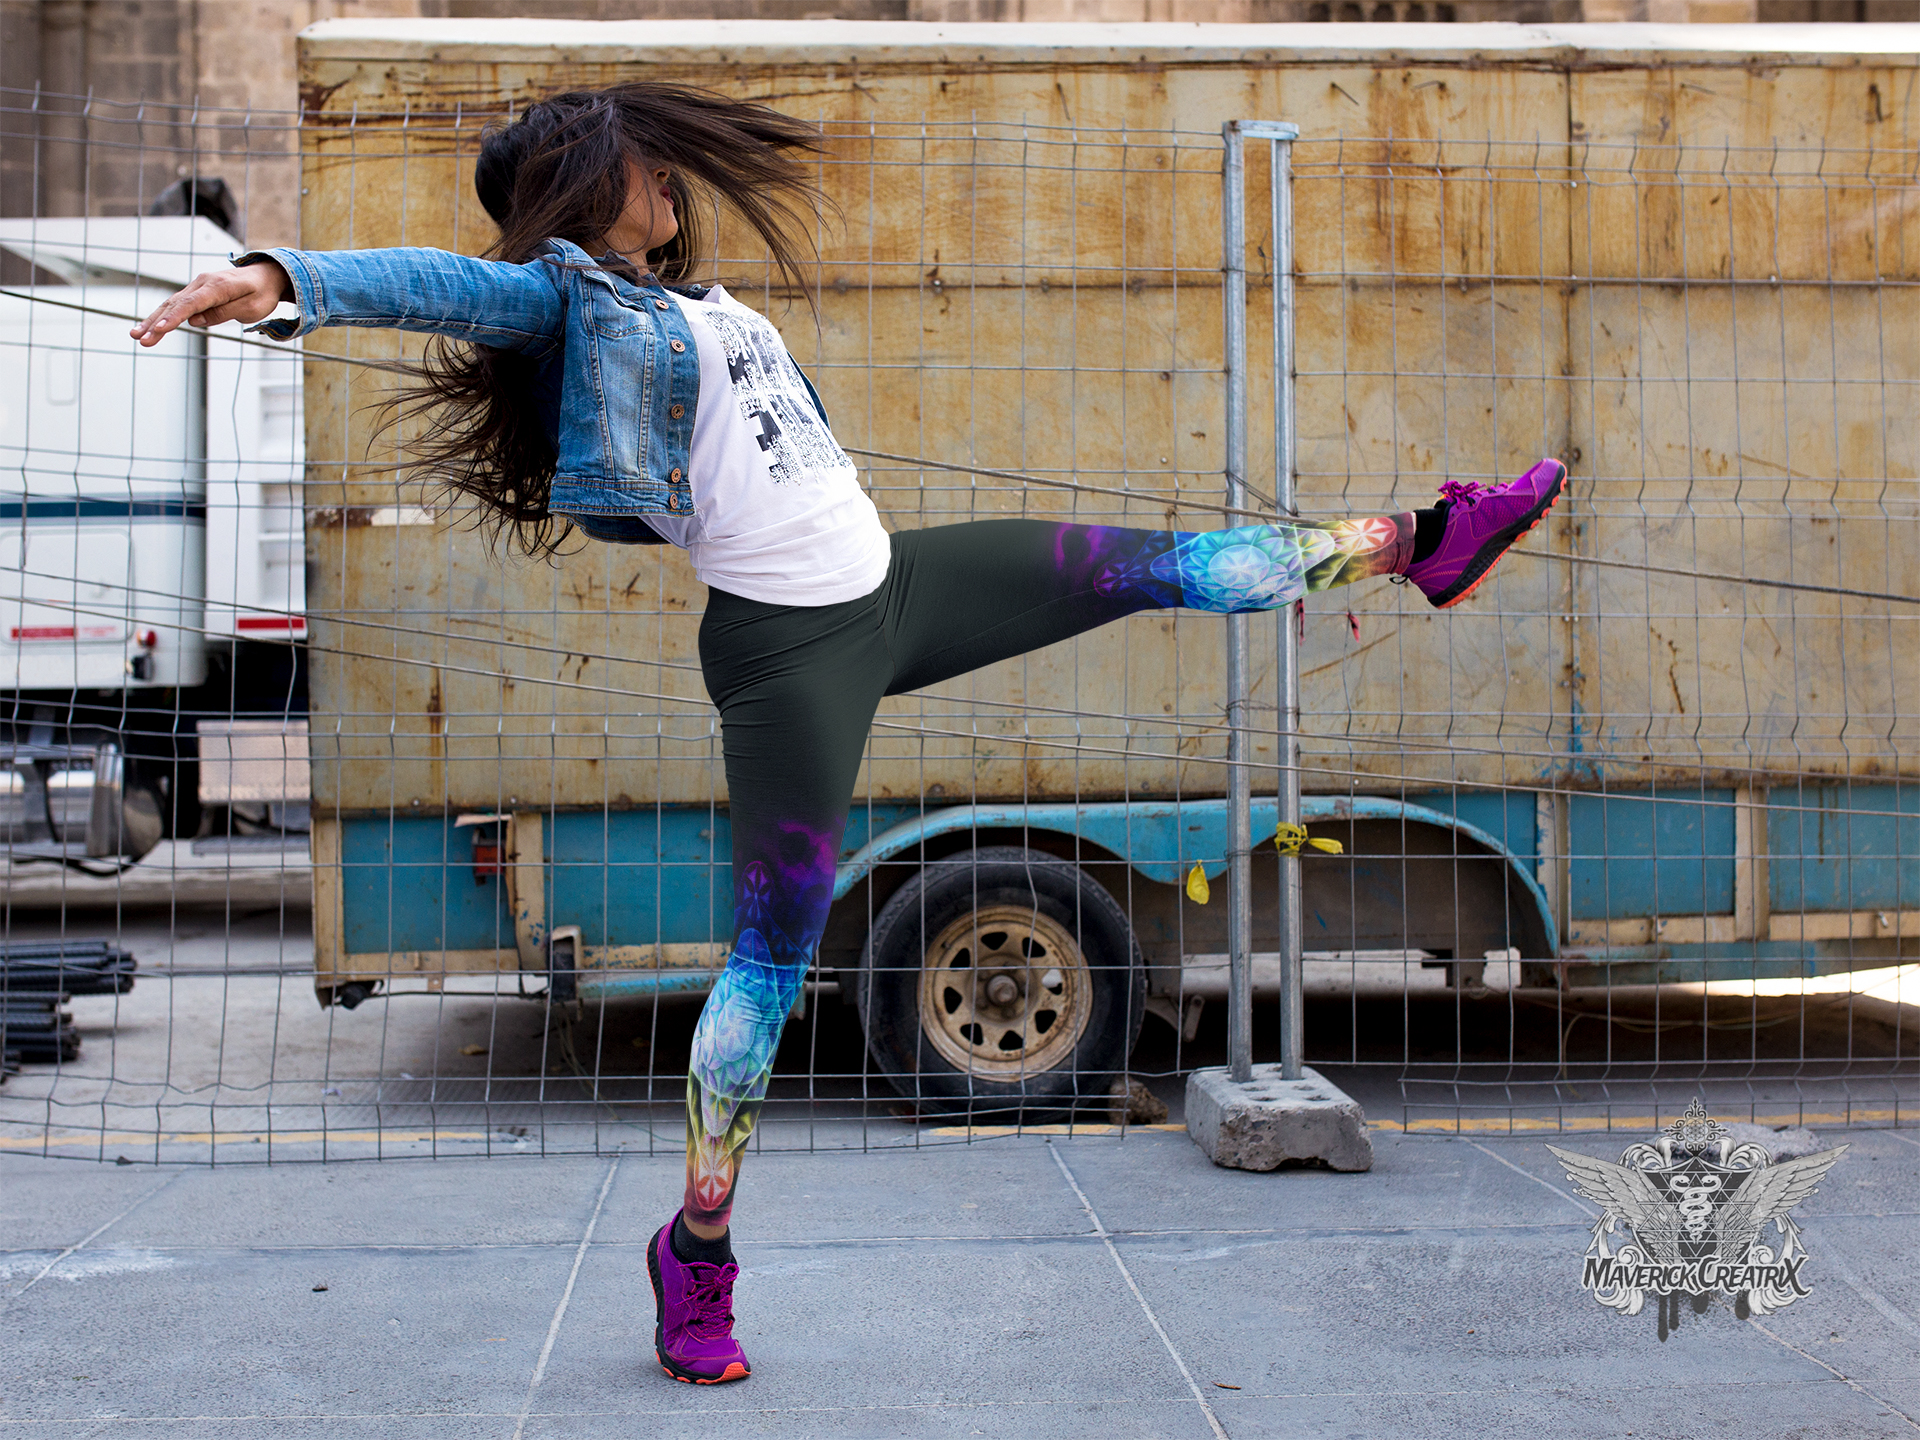 girl-dancing-on-the-street-while-wearing-leggings